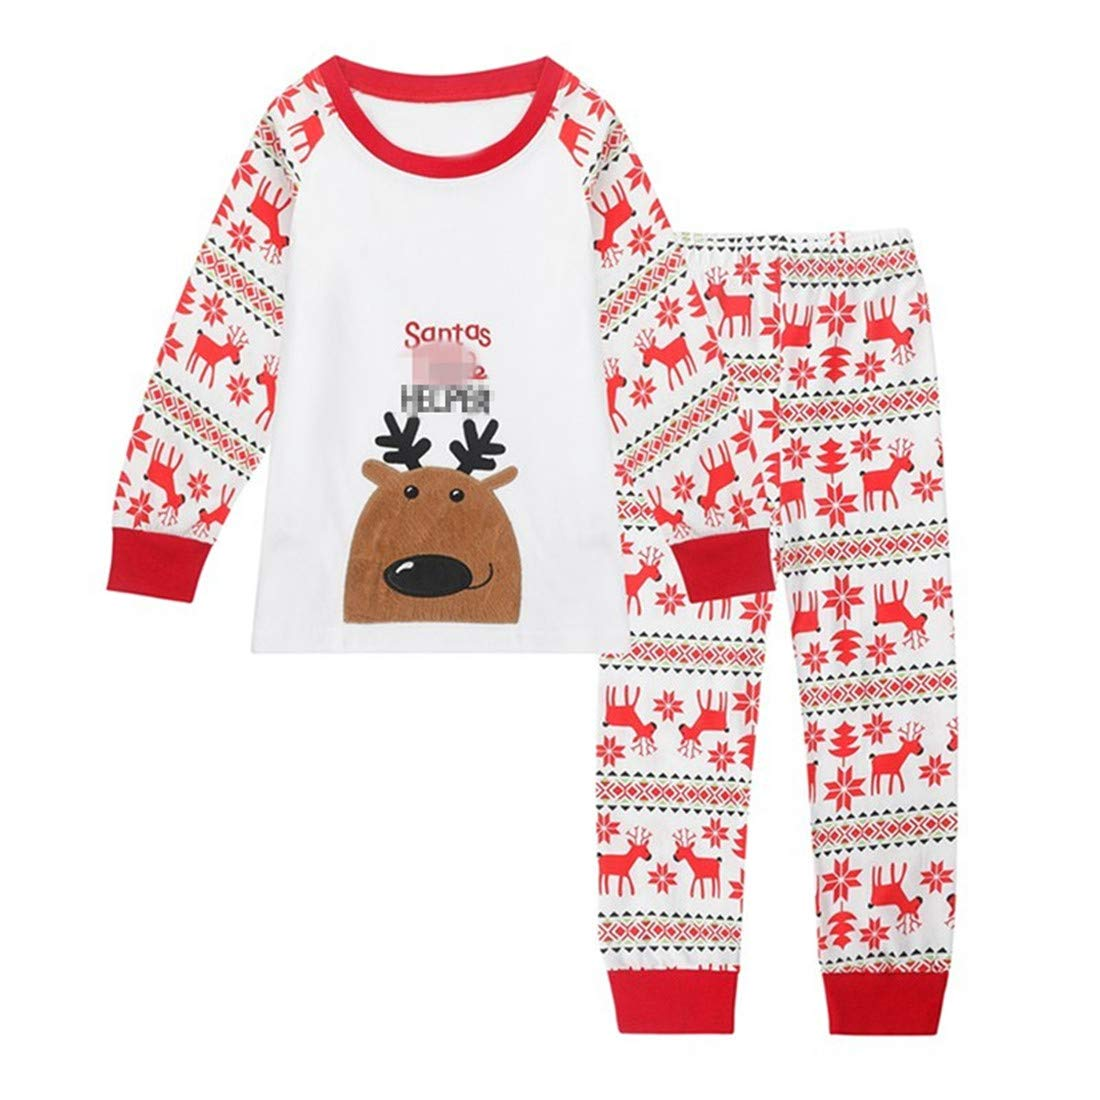 Tkala Fashion Christmas Boys Pajamas Children Clothes Set 100% Cotton Little Kids Pjs Sleepwear